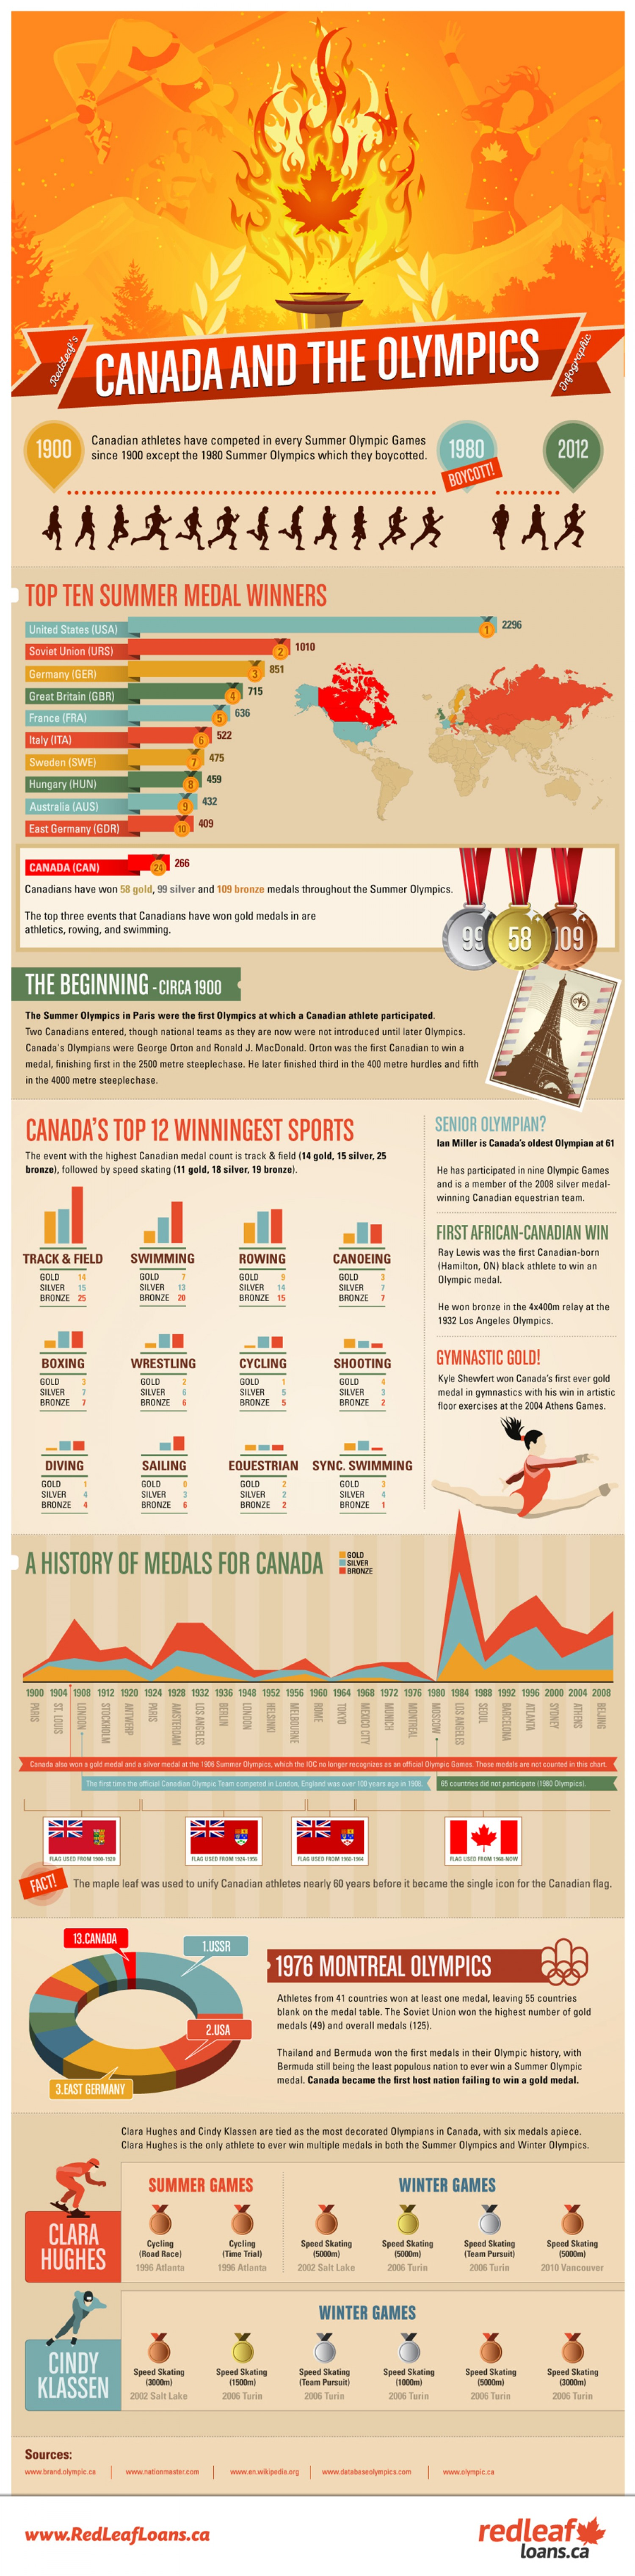 6. Canada and the Olympics